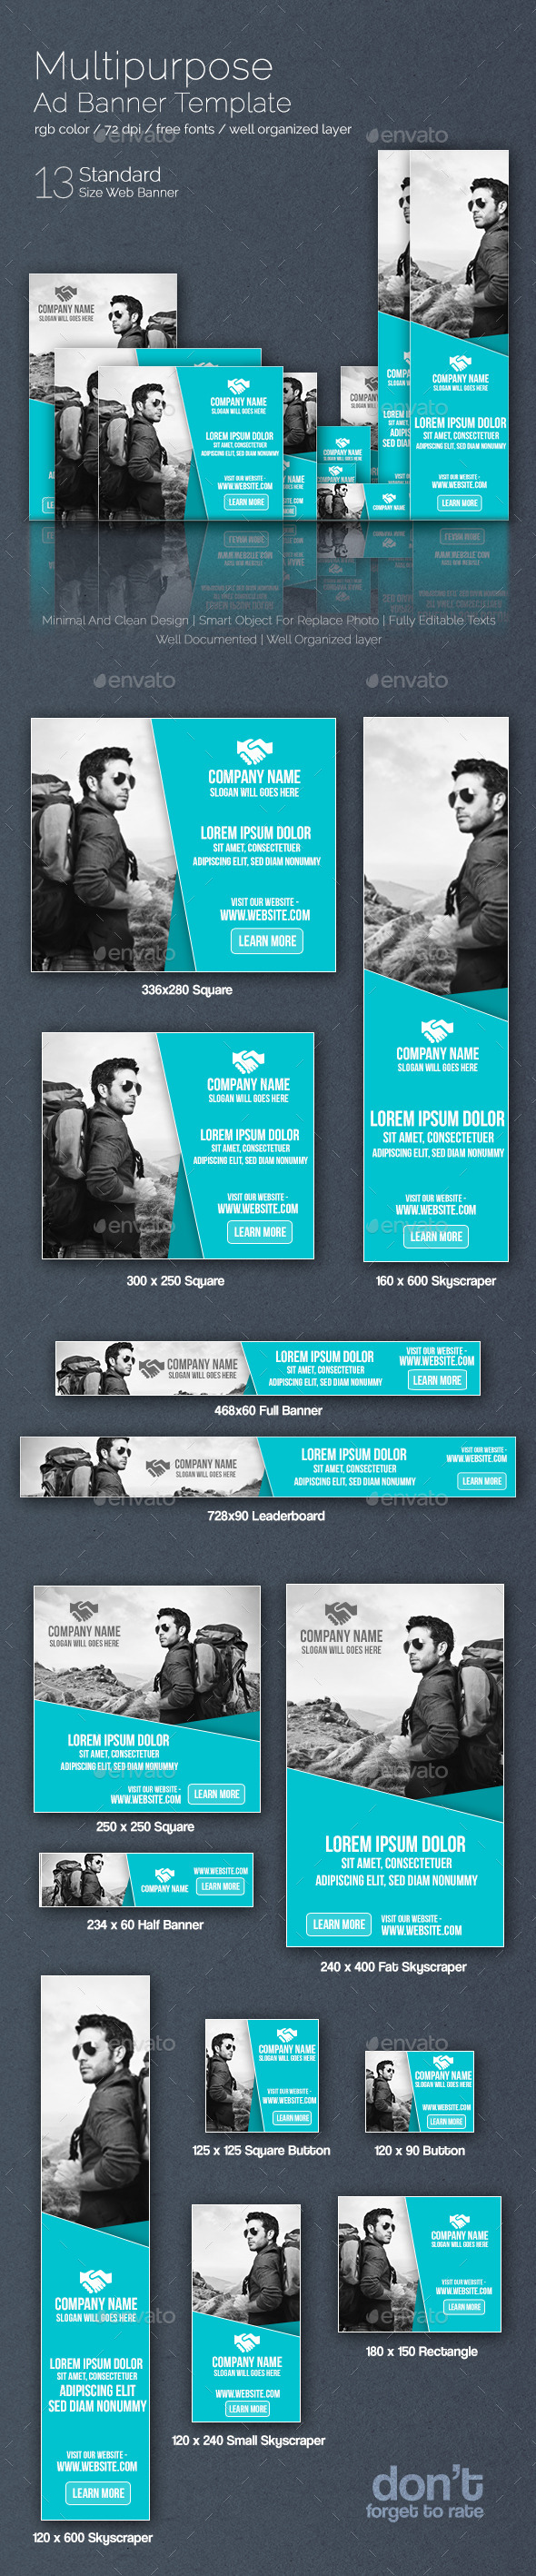 GraphicRiver Multipurpose Web Ad Banner 8859899